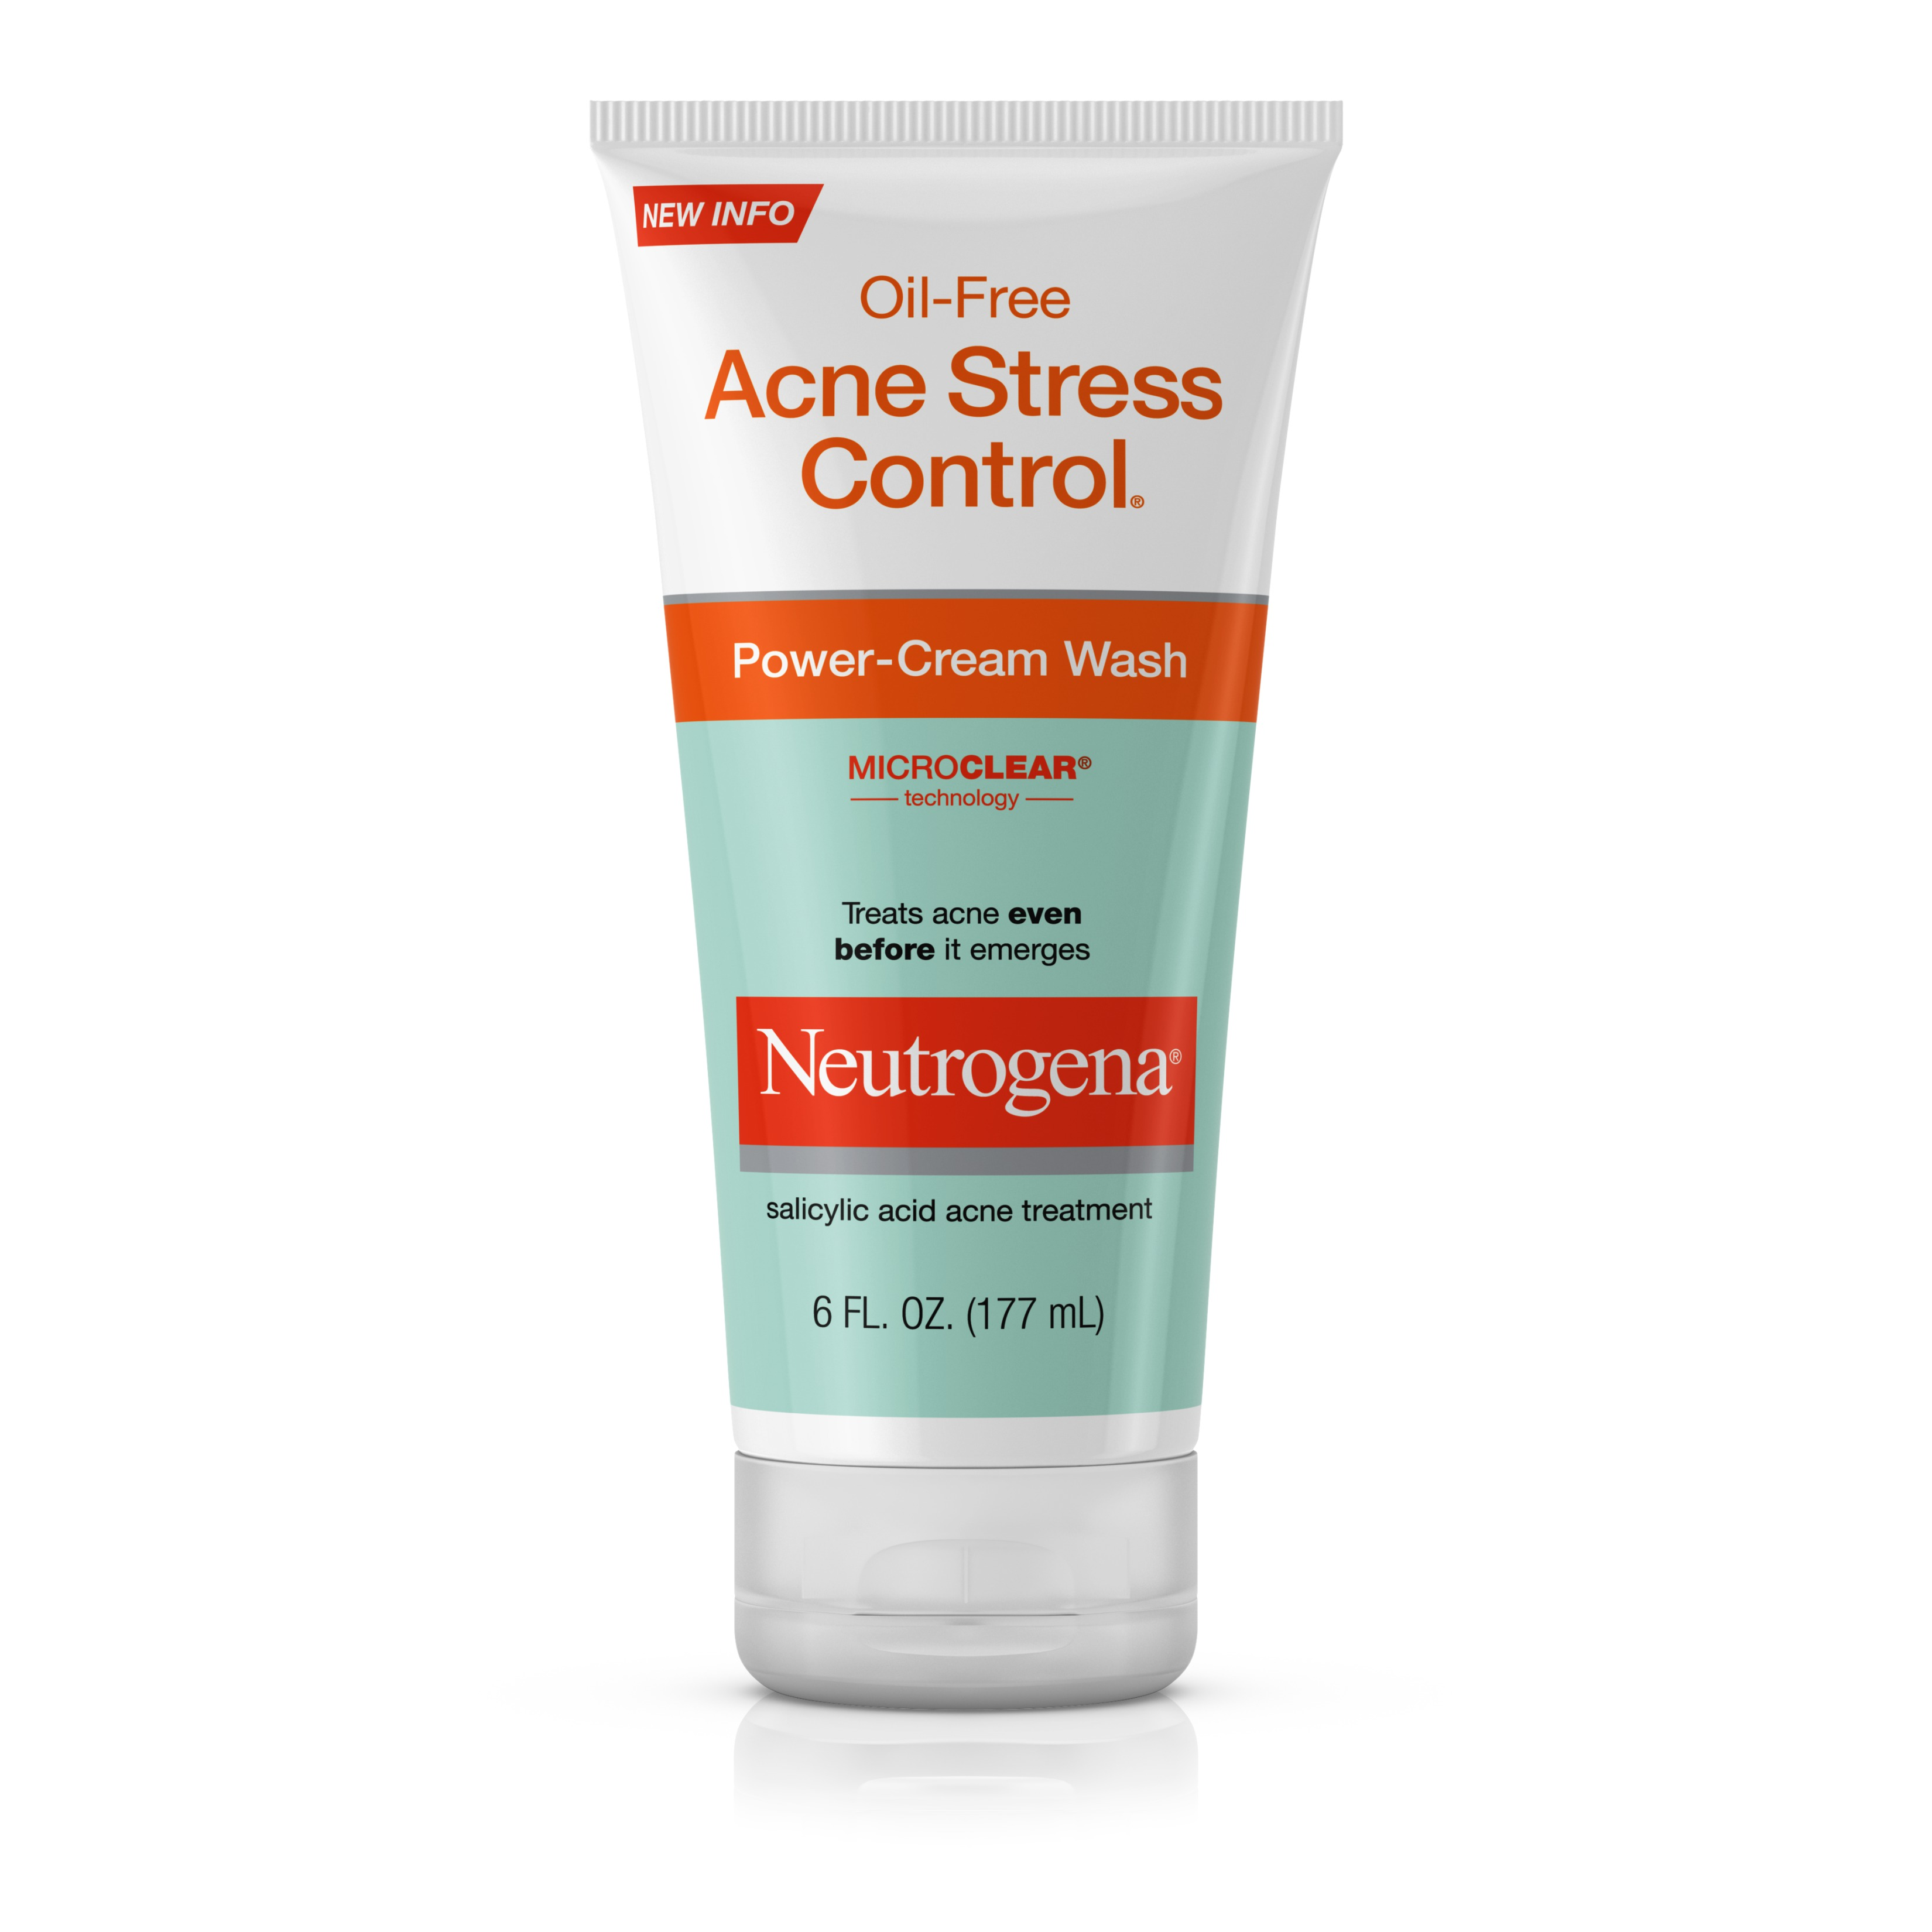 Neutrogena Oil-Free Acne Stress Control Power-Cream Wash, 6 Fl. Oz.